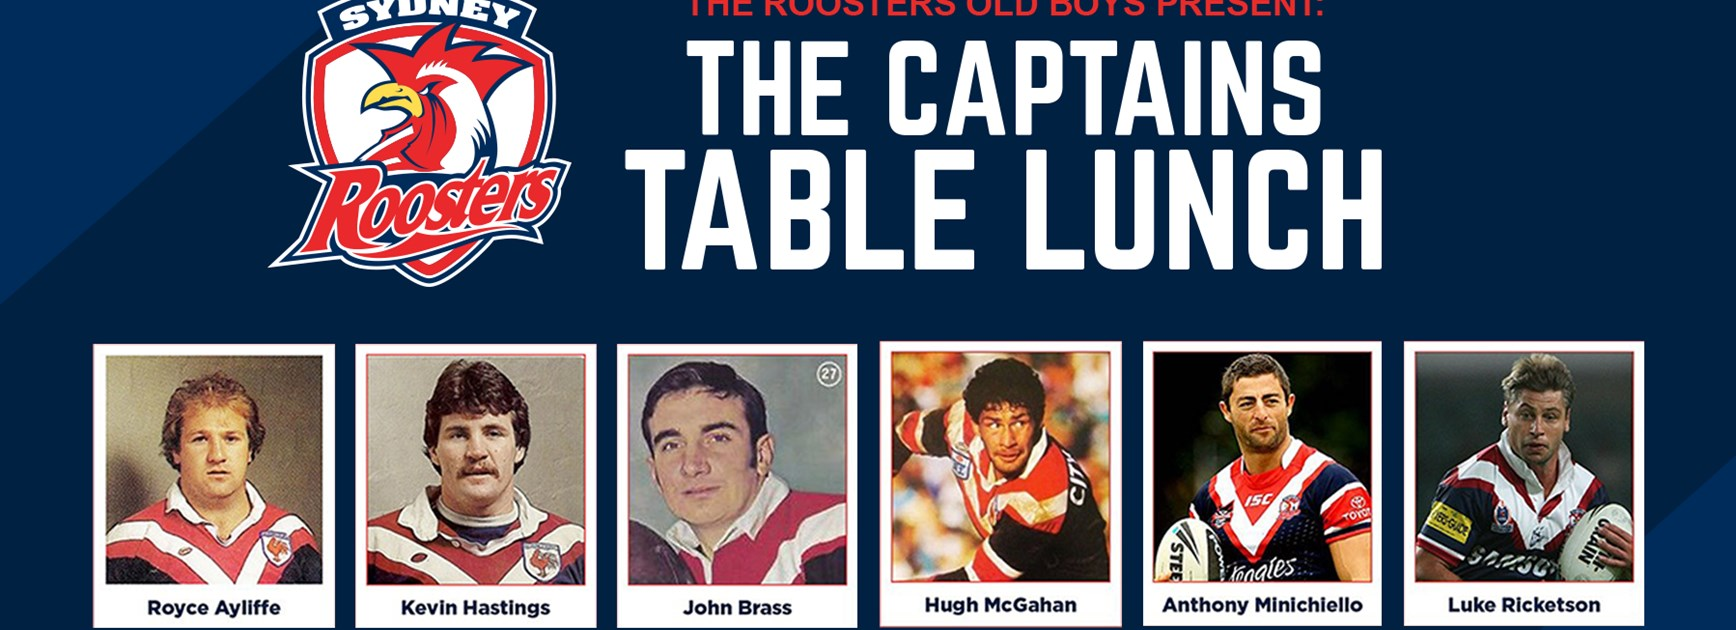 Roosters Old Boys Captains Table Lunch